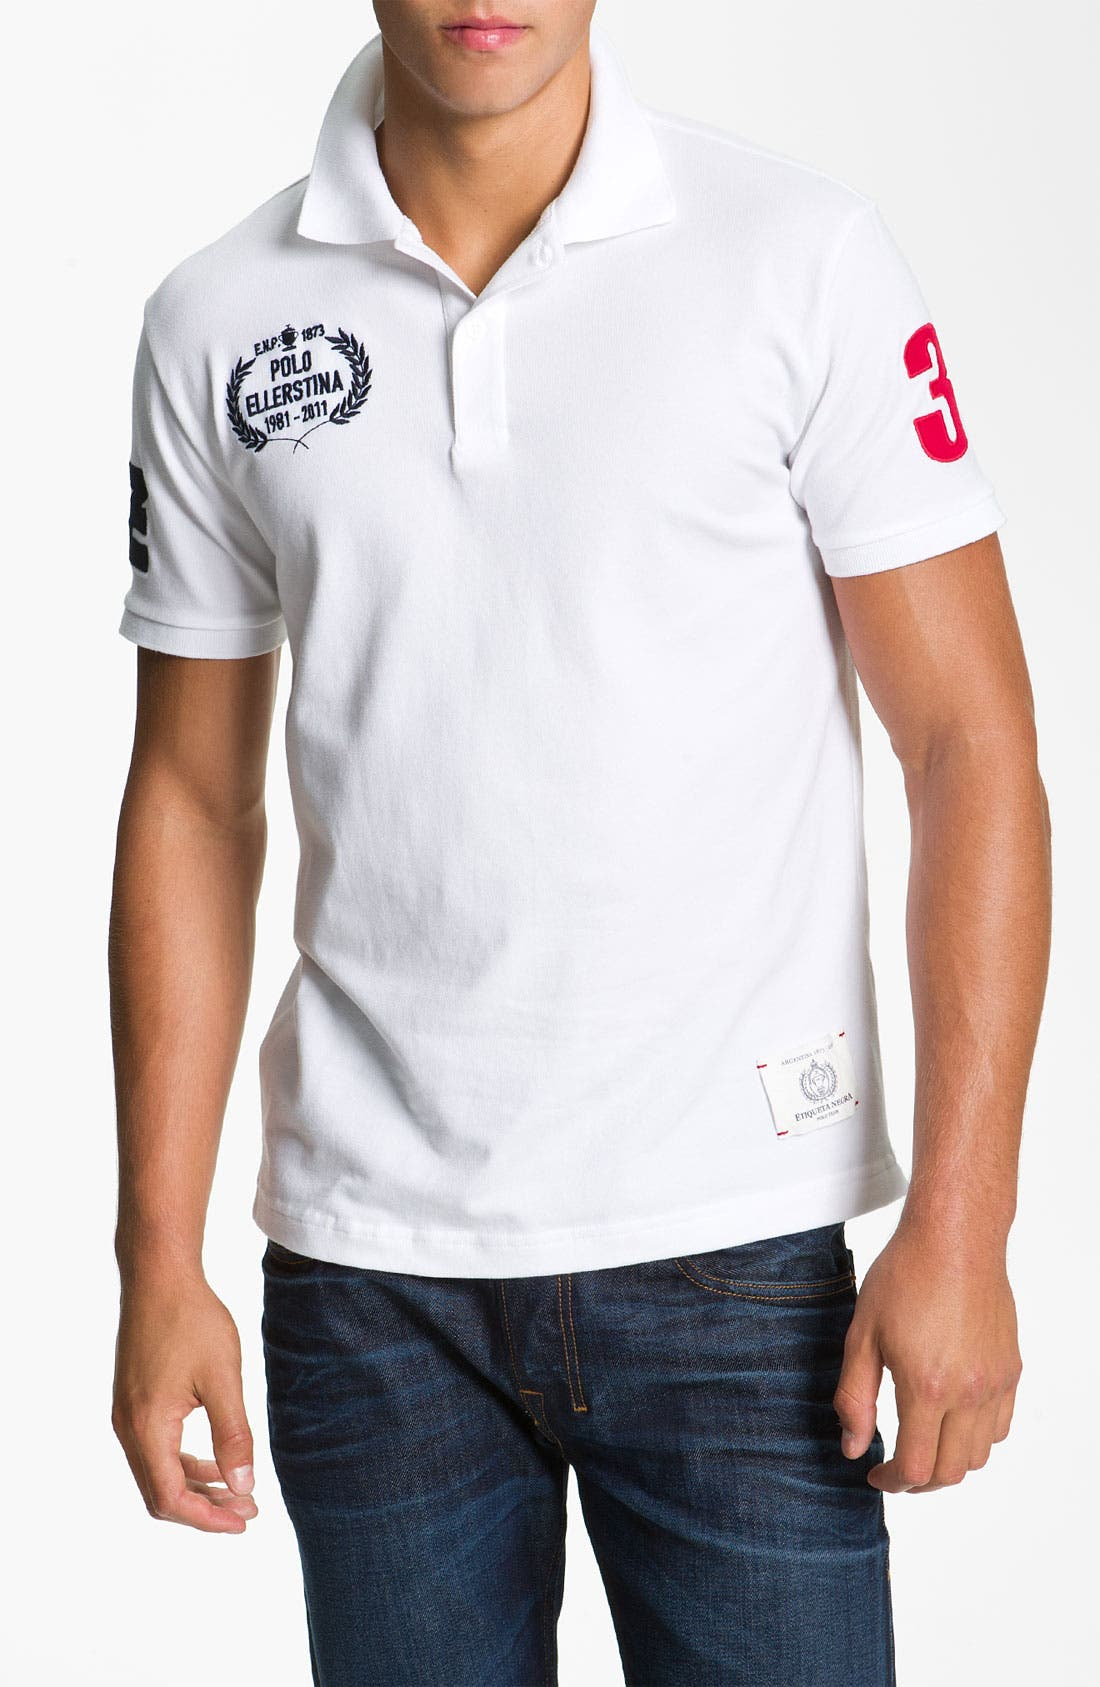 Alternate Image 1 Selected - Etiqueta Negra Short Sleeve Polo